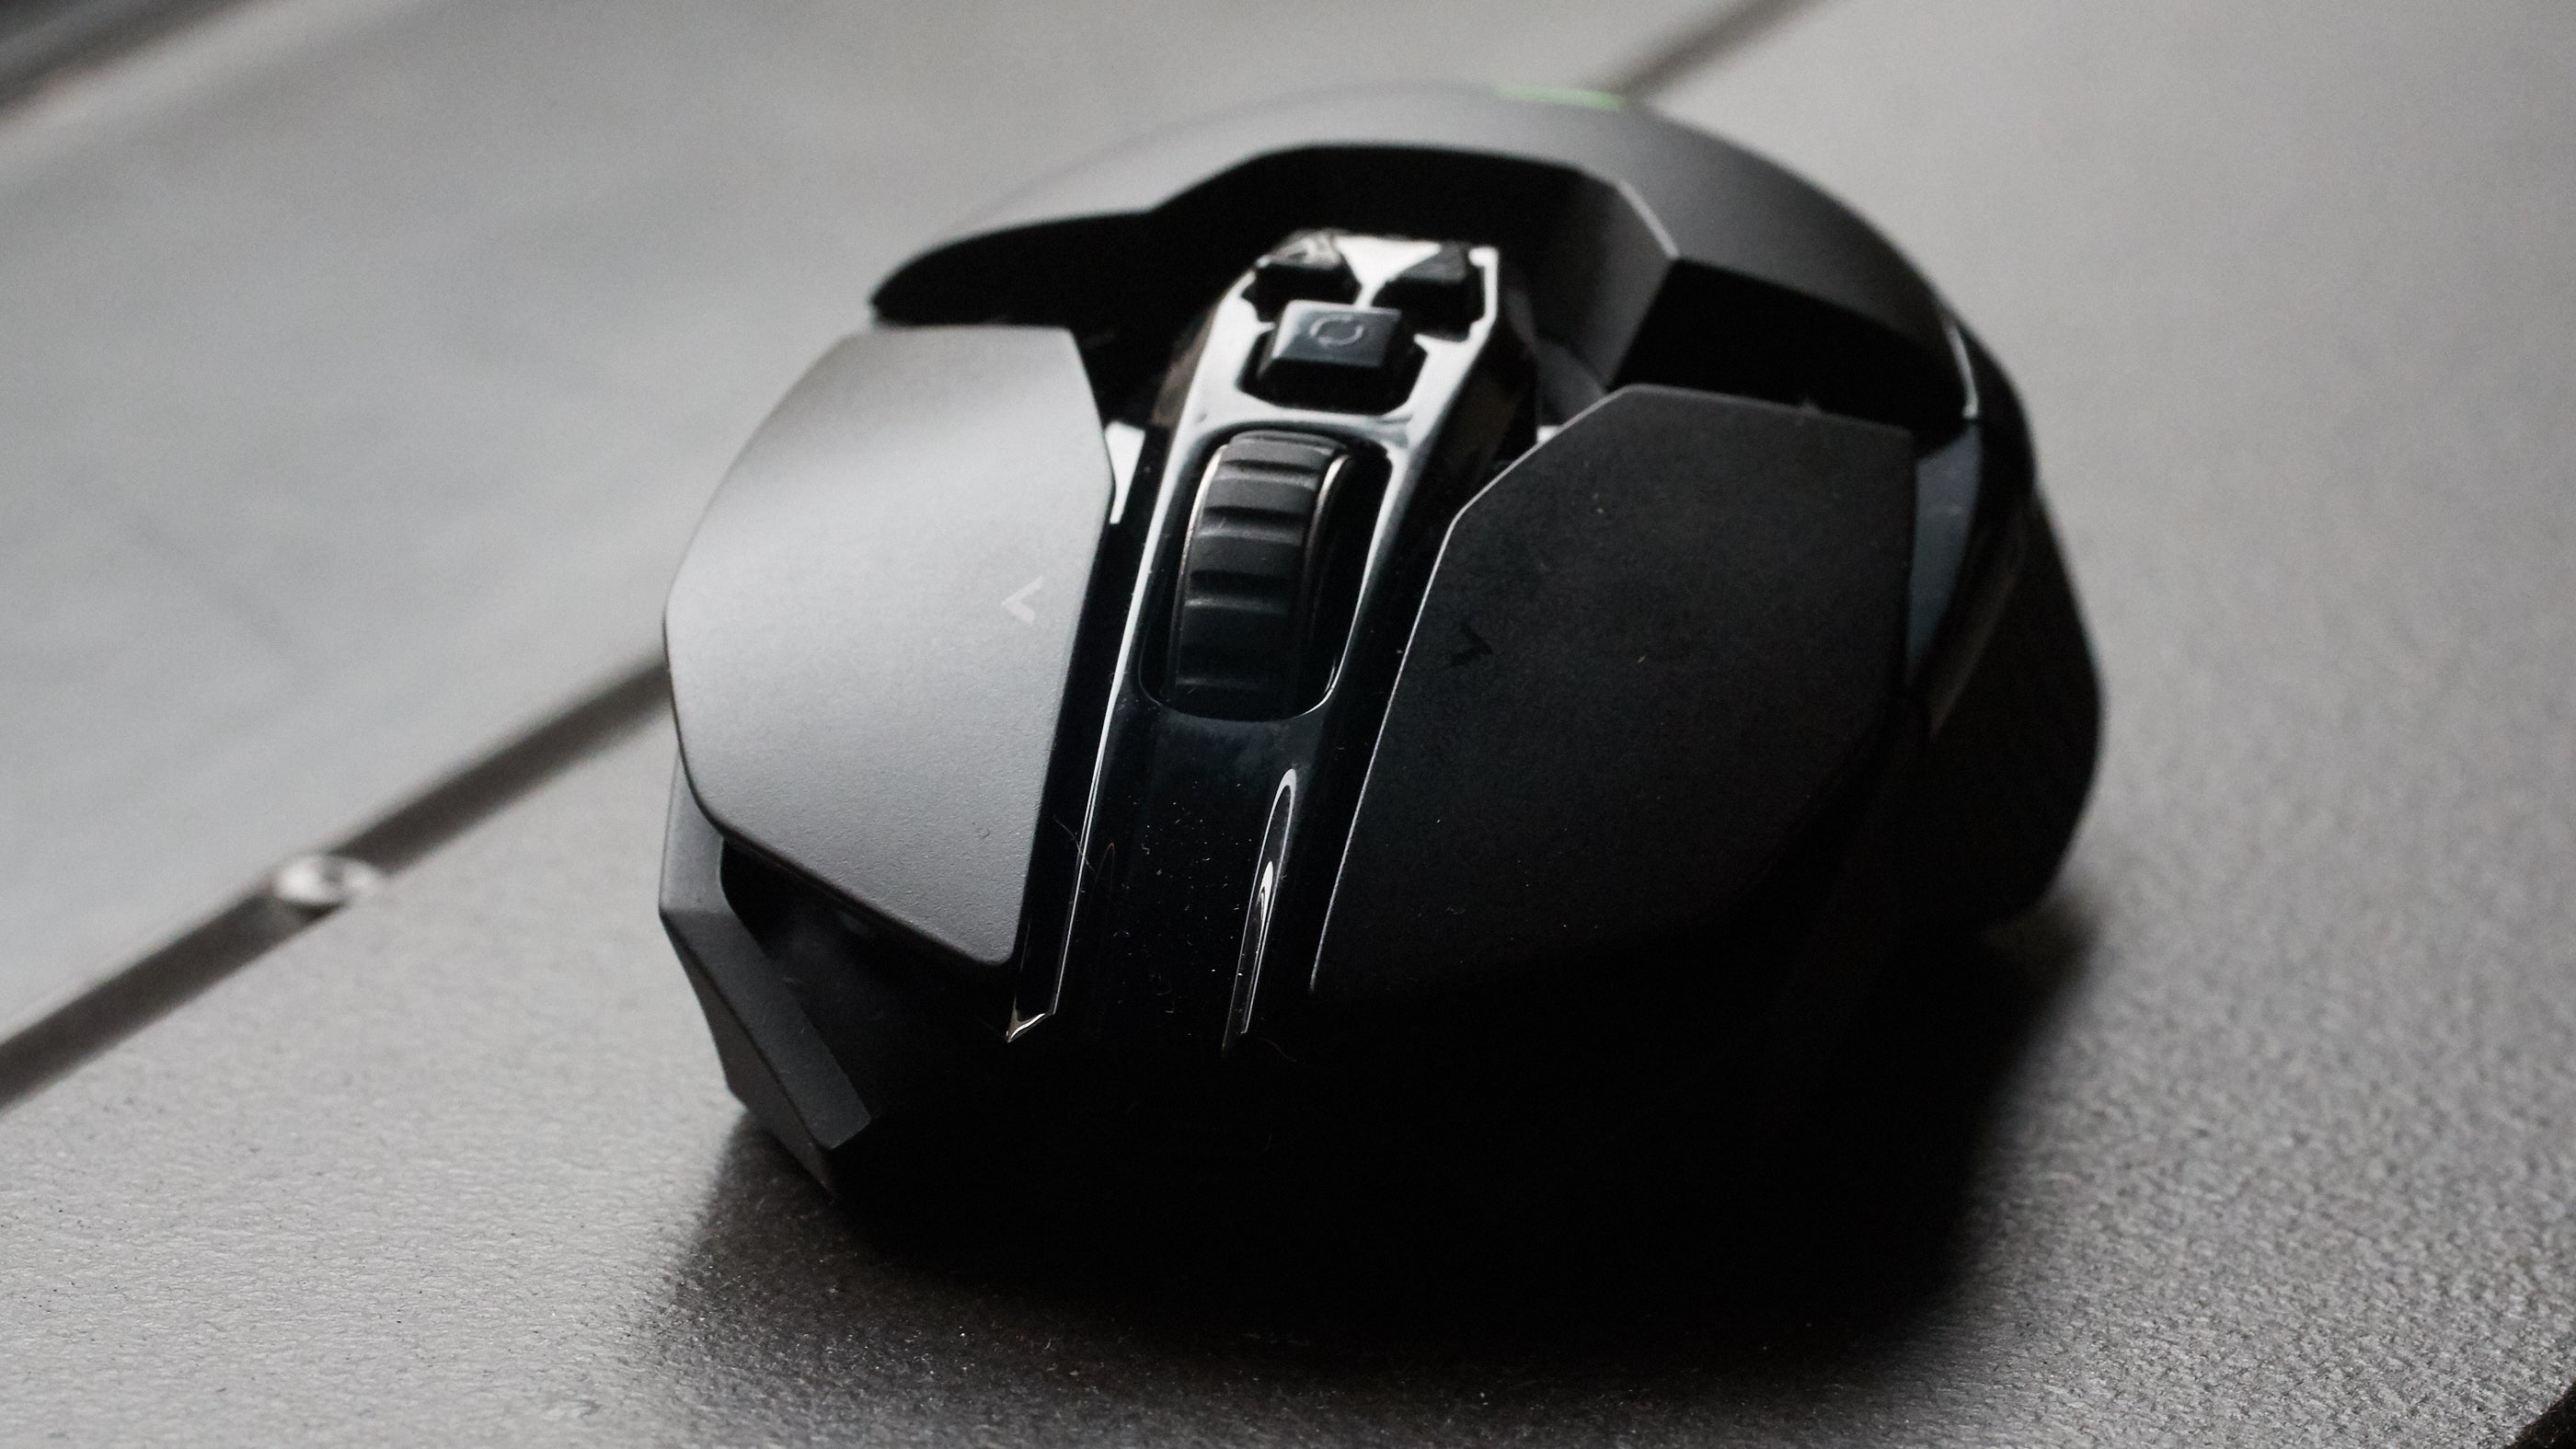 I Can't Figure Out Who This Luxurious Wireless Mouse System